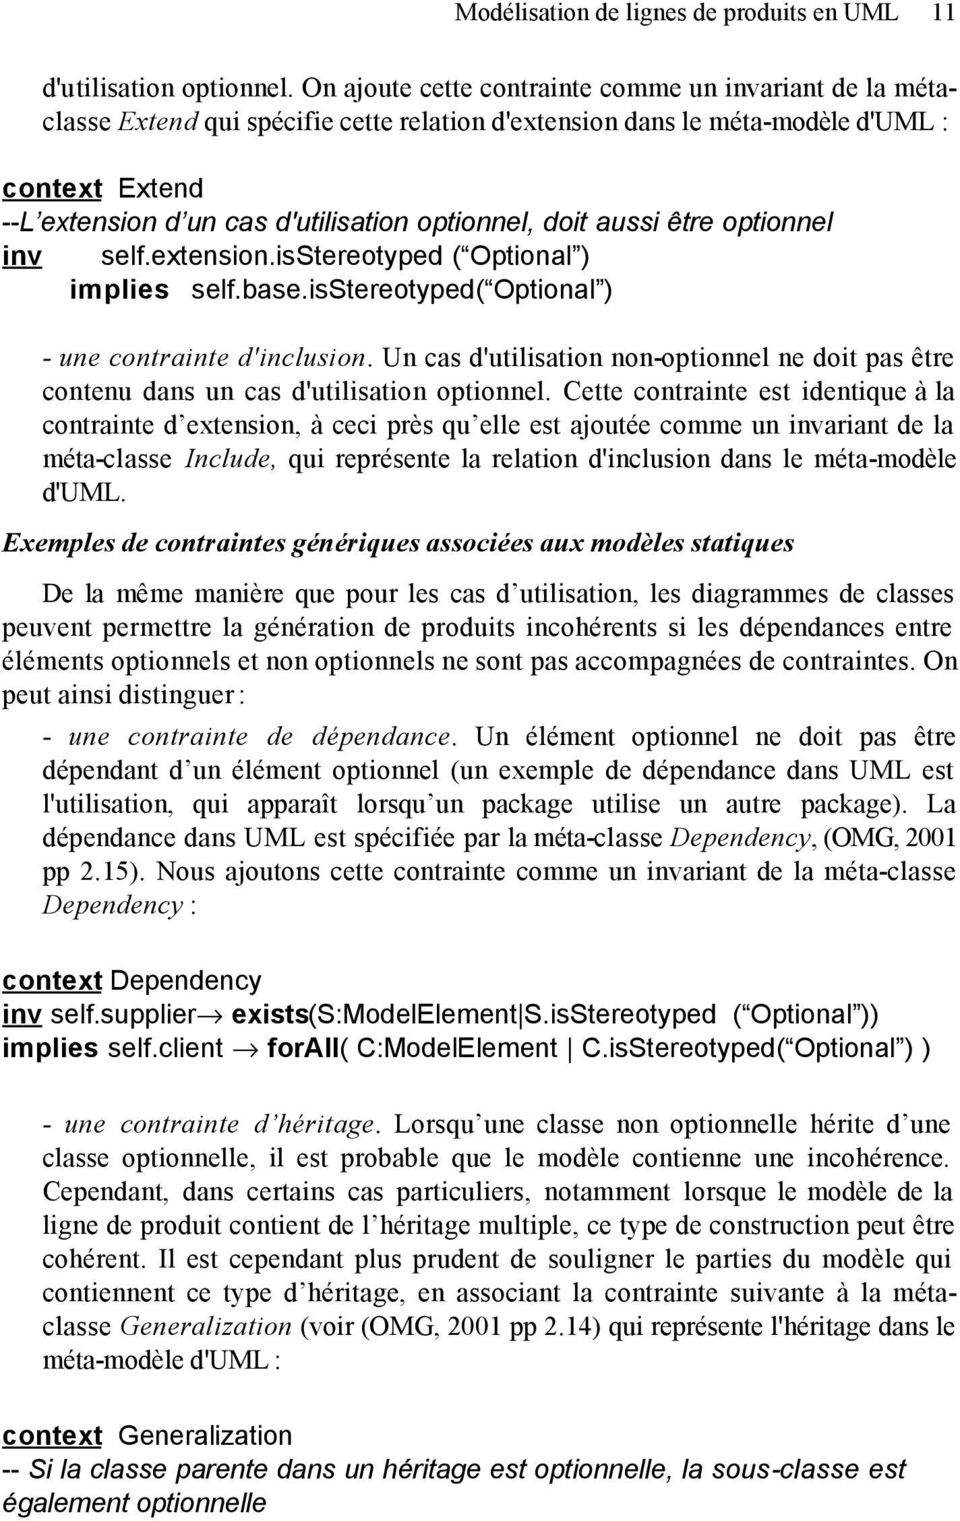 optionnel, doit aussi être optionnel inv self.extension.isstereotyped ( Optional ) implies self.base.isstereotyped( Optional ) - une contrainte d'inclusion.